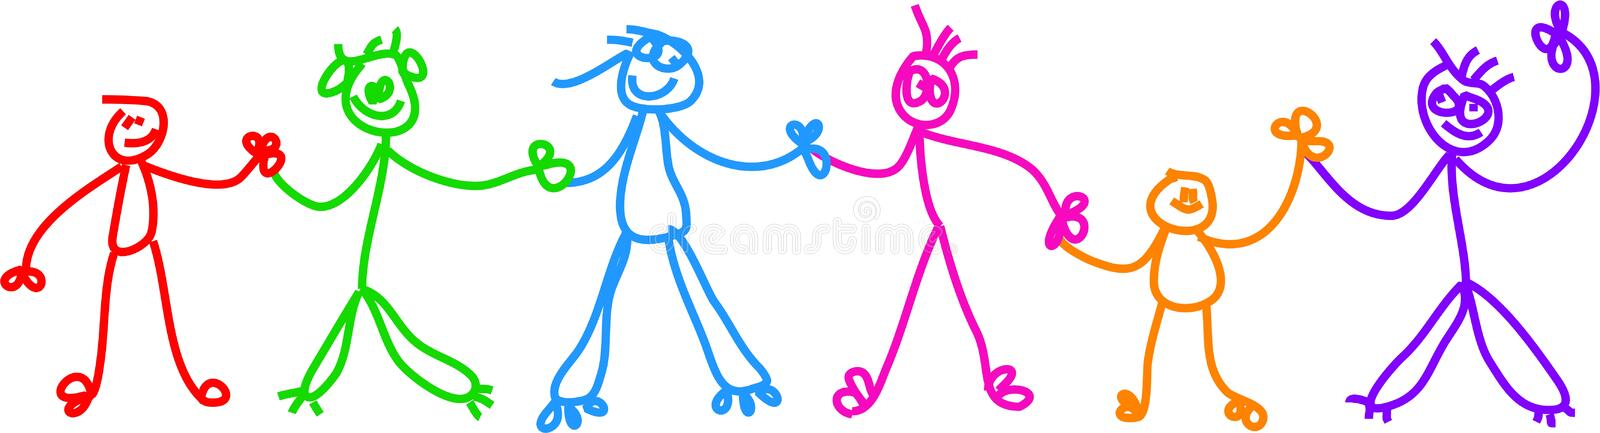 Kid chain. Childlike drawing of a group of diverse stick children holding hands royalty free illustration